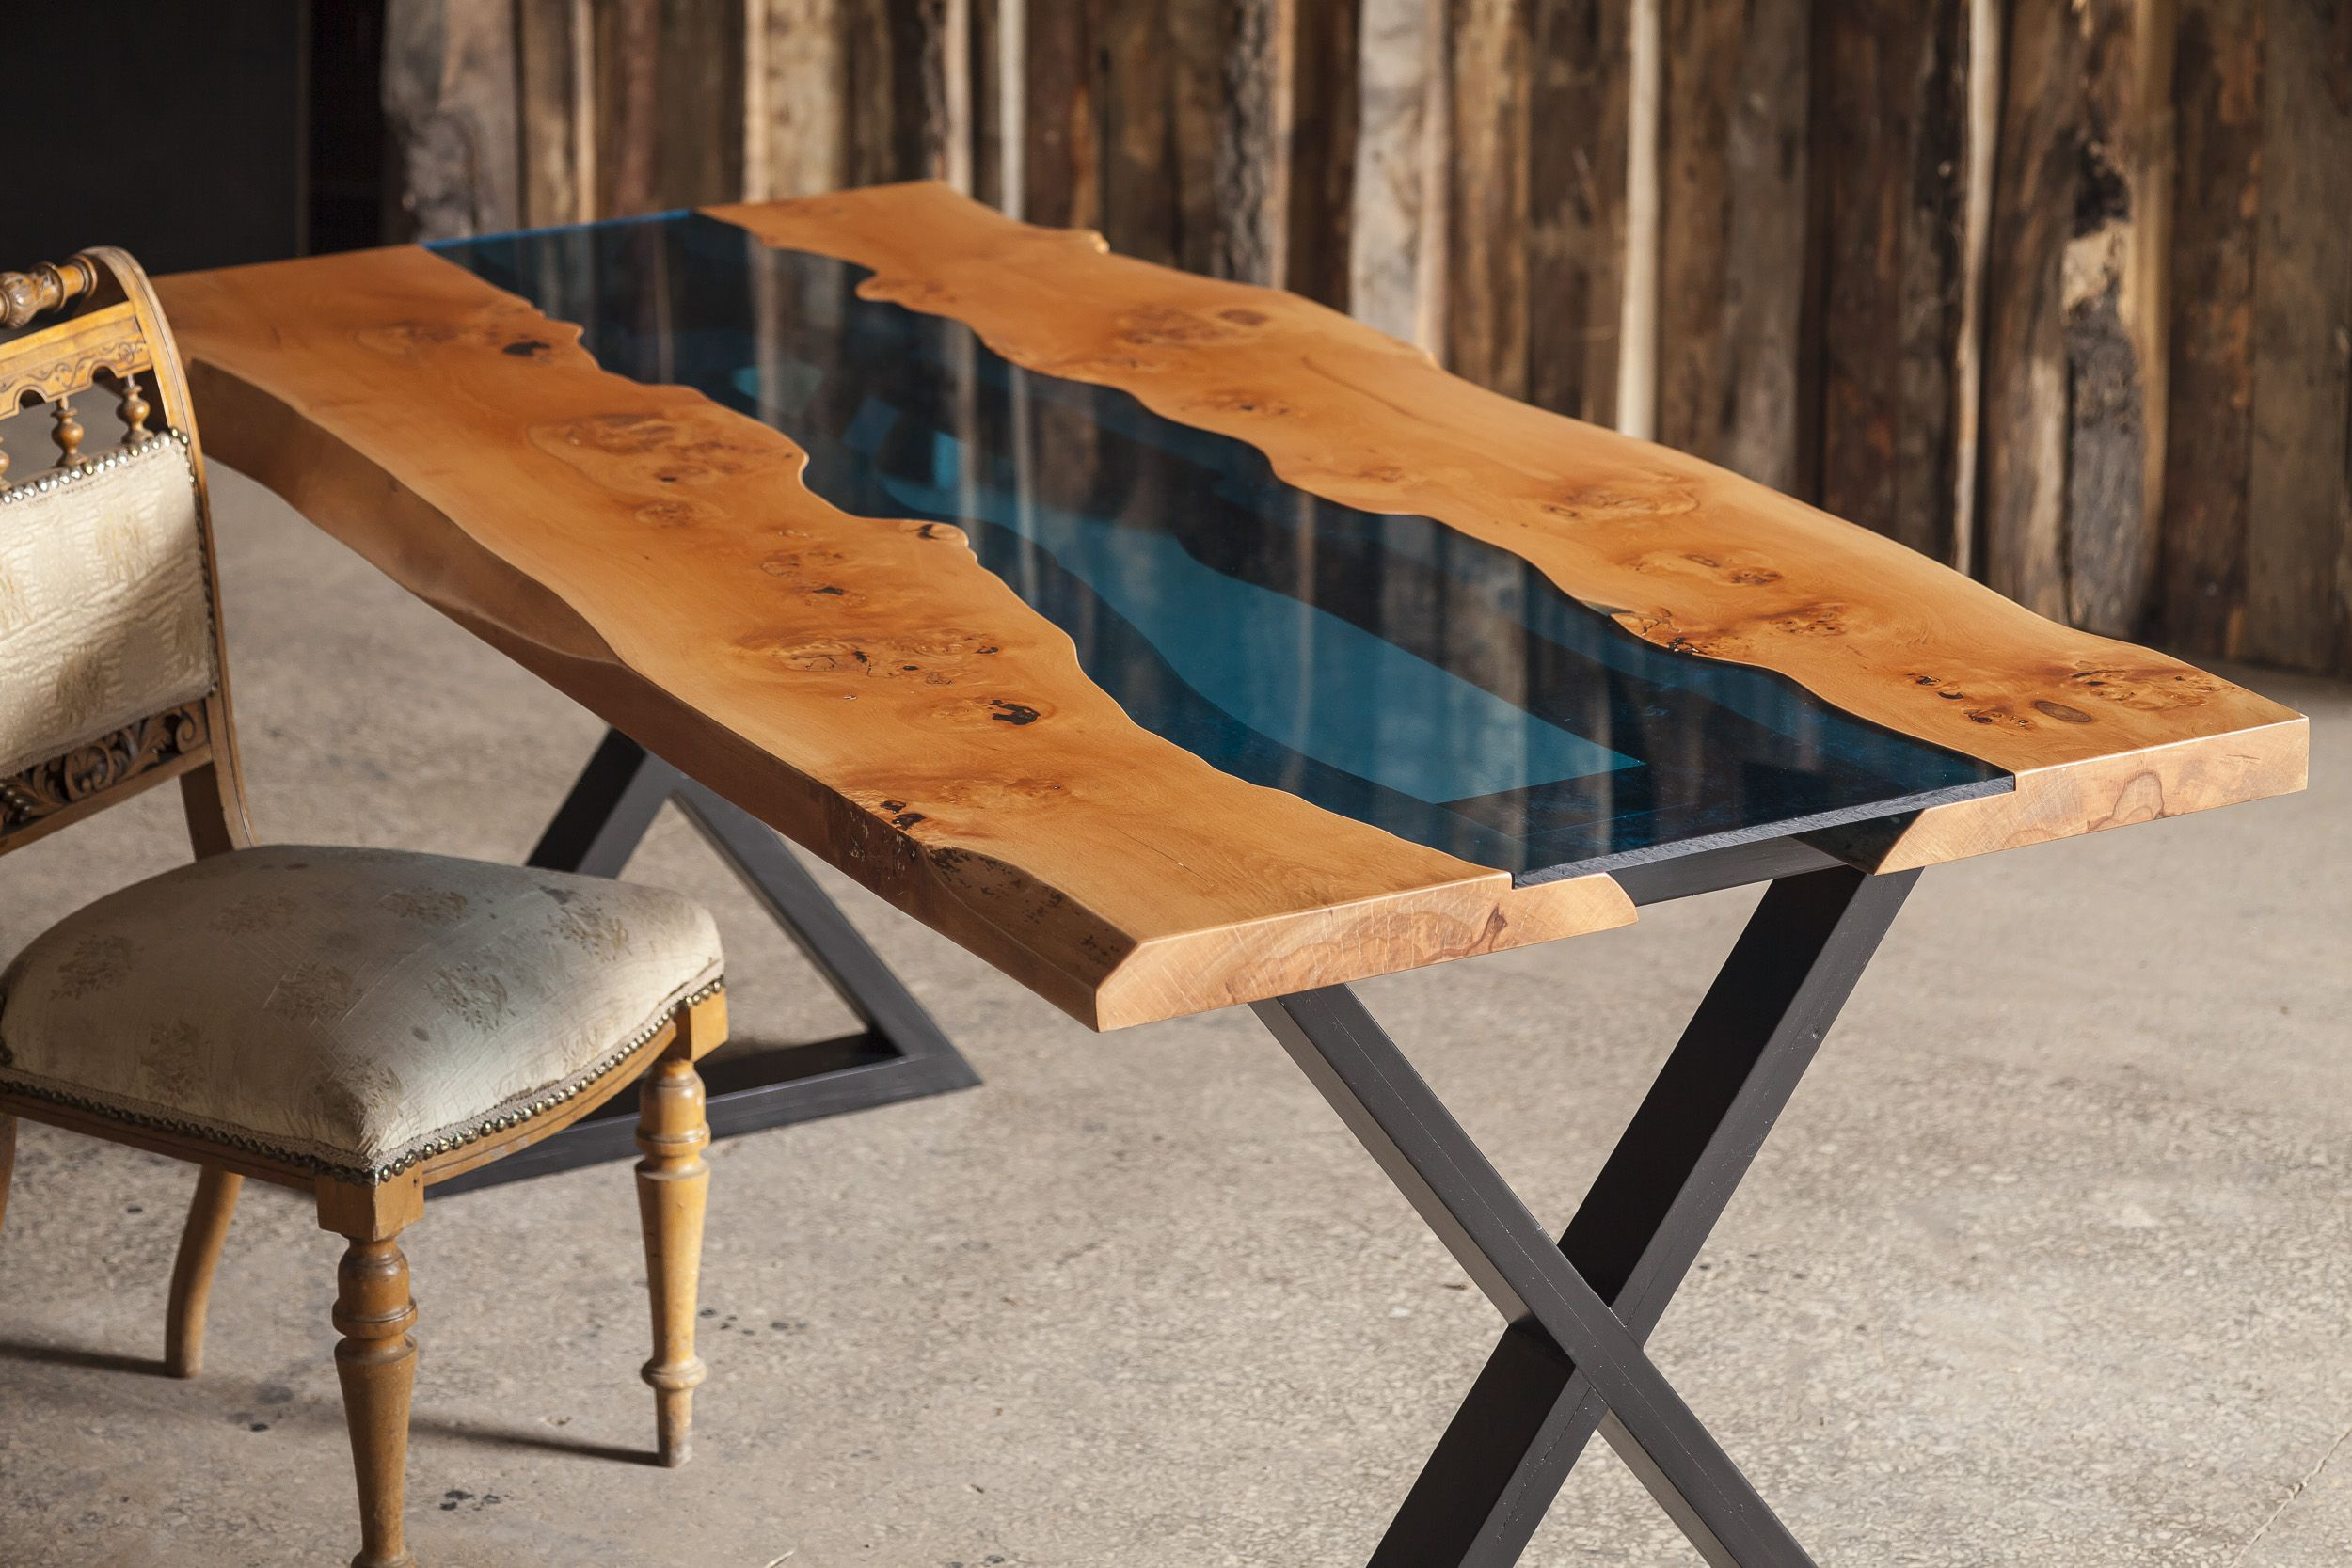 Aqua Table Made From Beech Tree And Blue Acrylic Available For